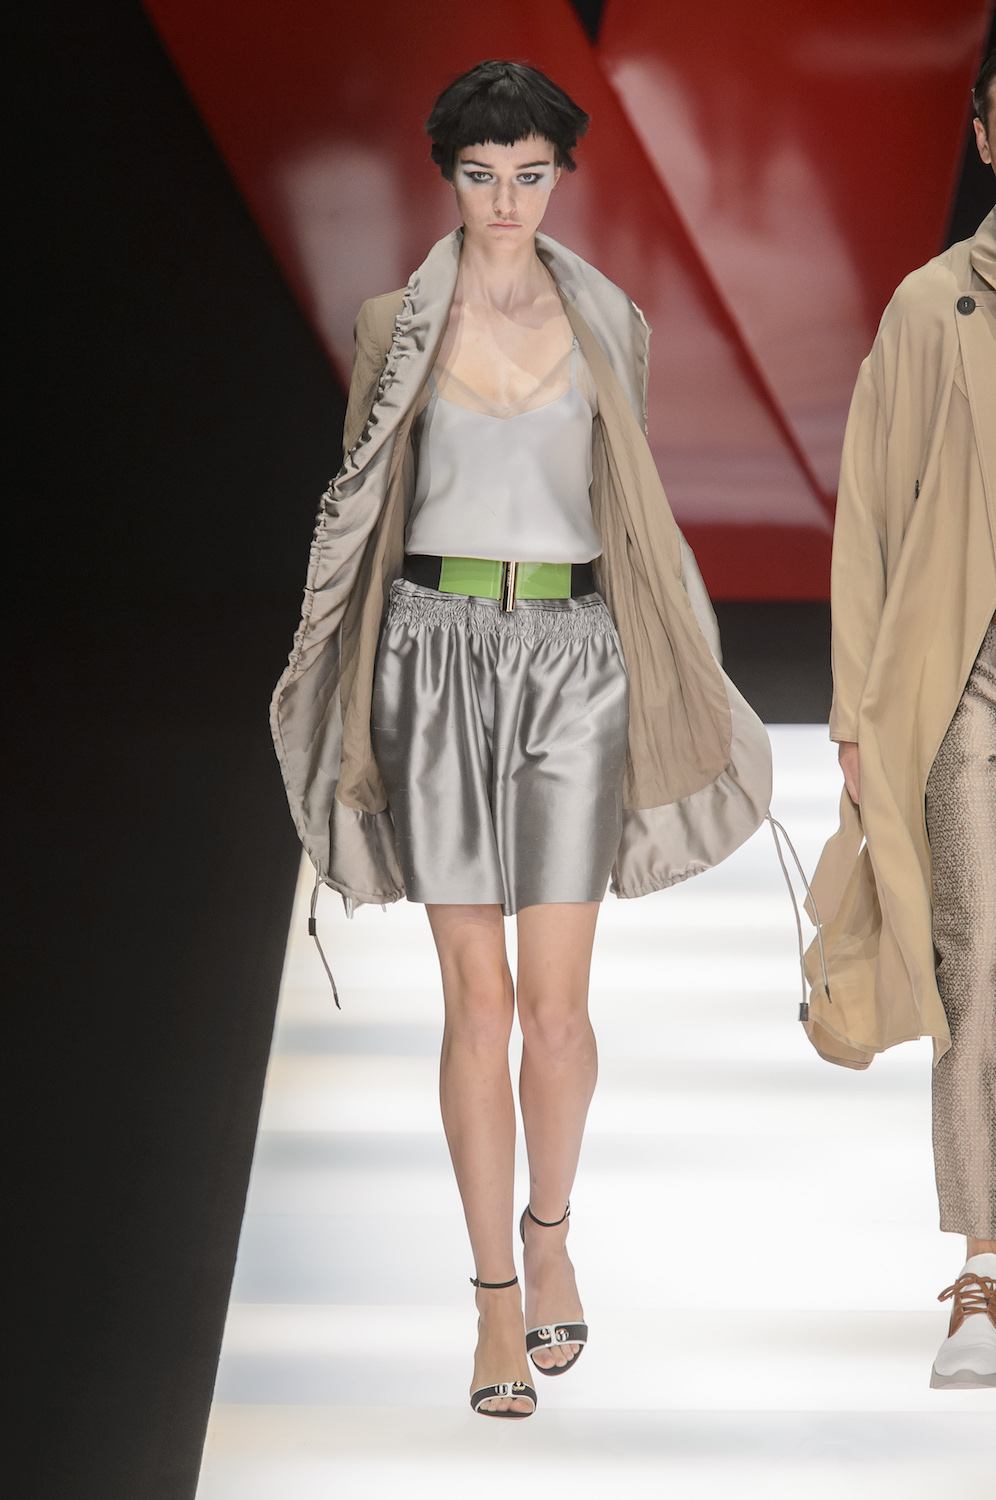 Armani emporio spring runway review advise to wear in everyday in 2019